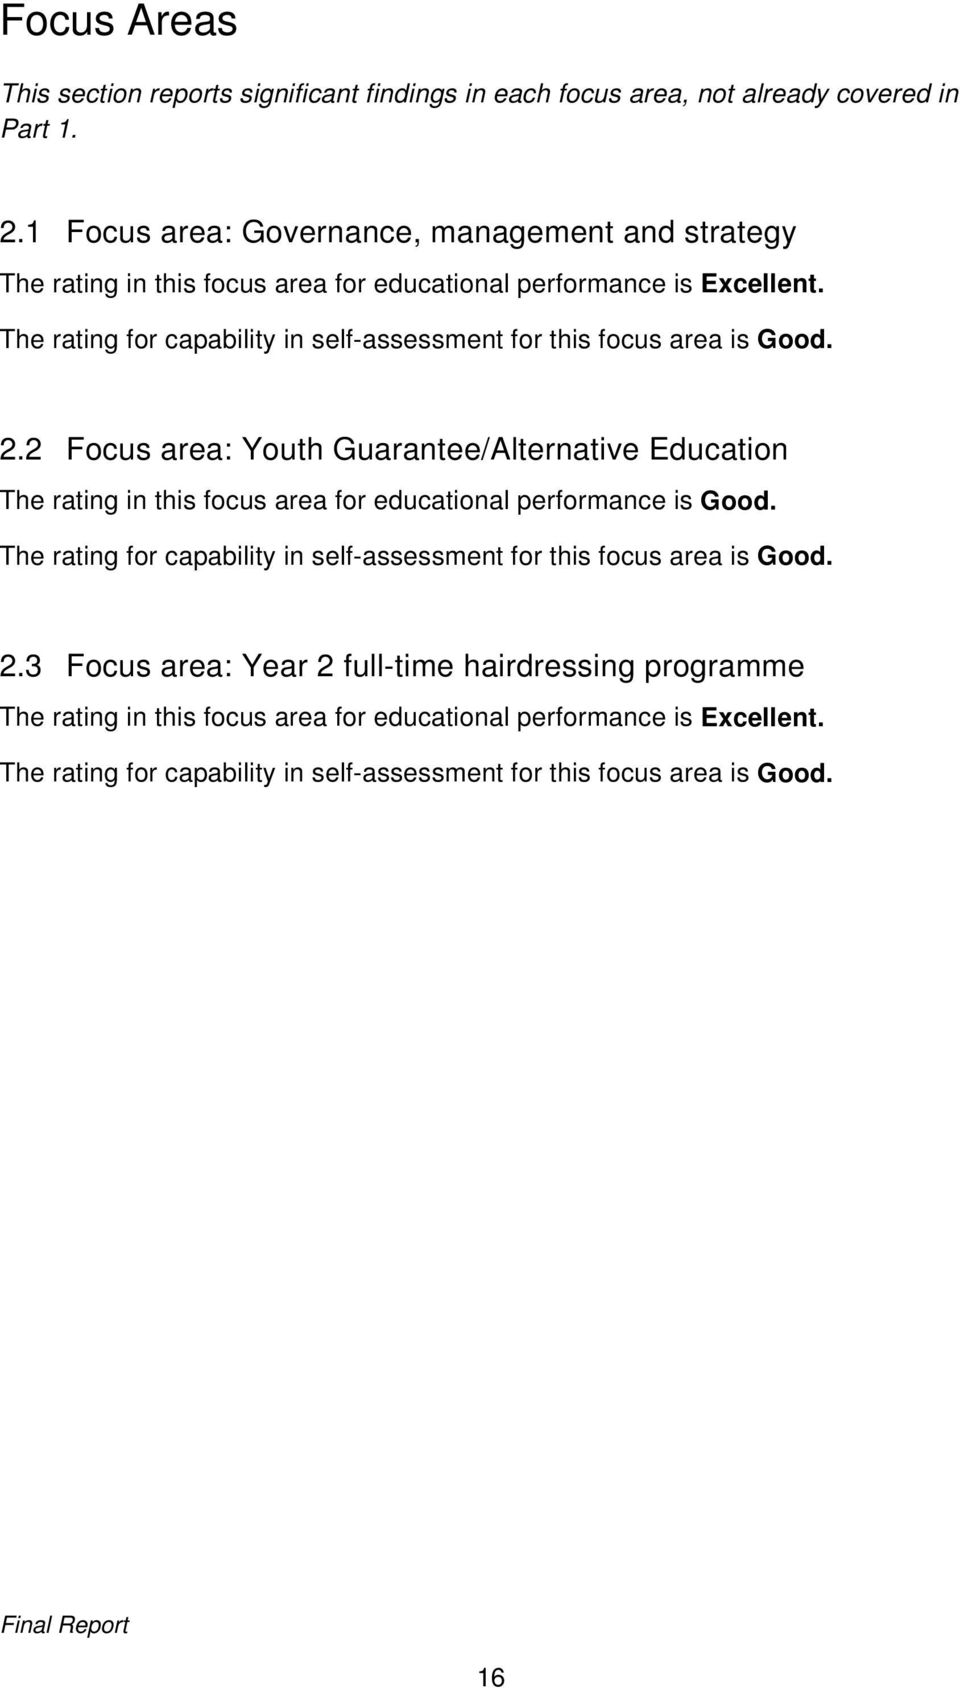 The rating for capability in self-assessment for this focus area is Good. 2.